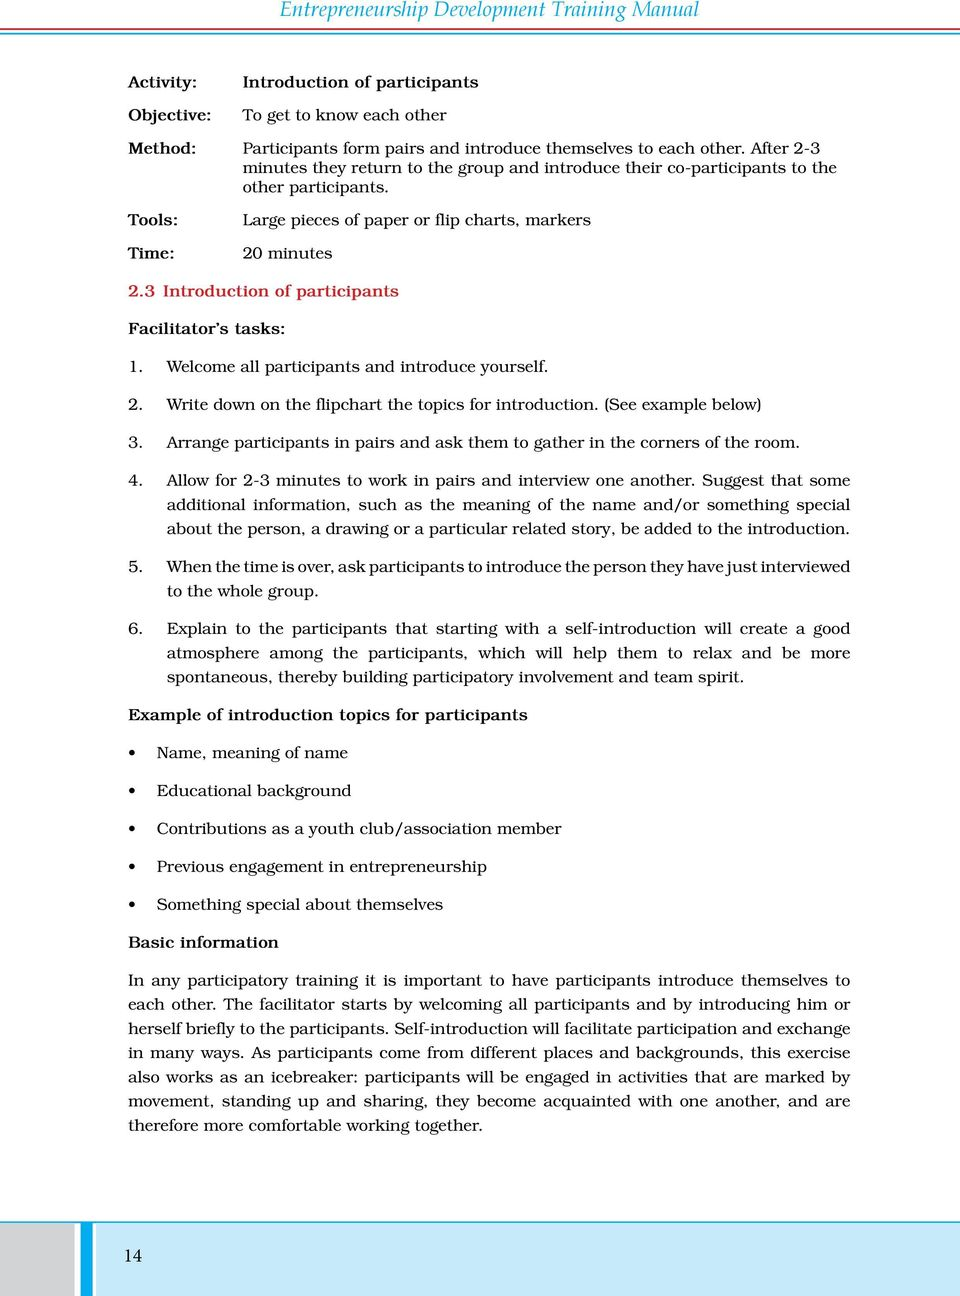 introduce yourself essay pdf writing and editing services autobiography outline template word pdf documents urdu essay writing standard essay format bing images write a short essay on my best friend